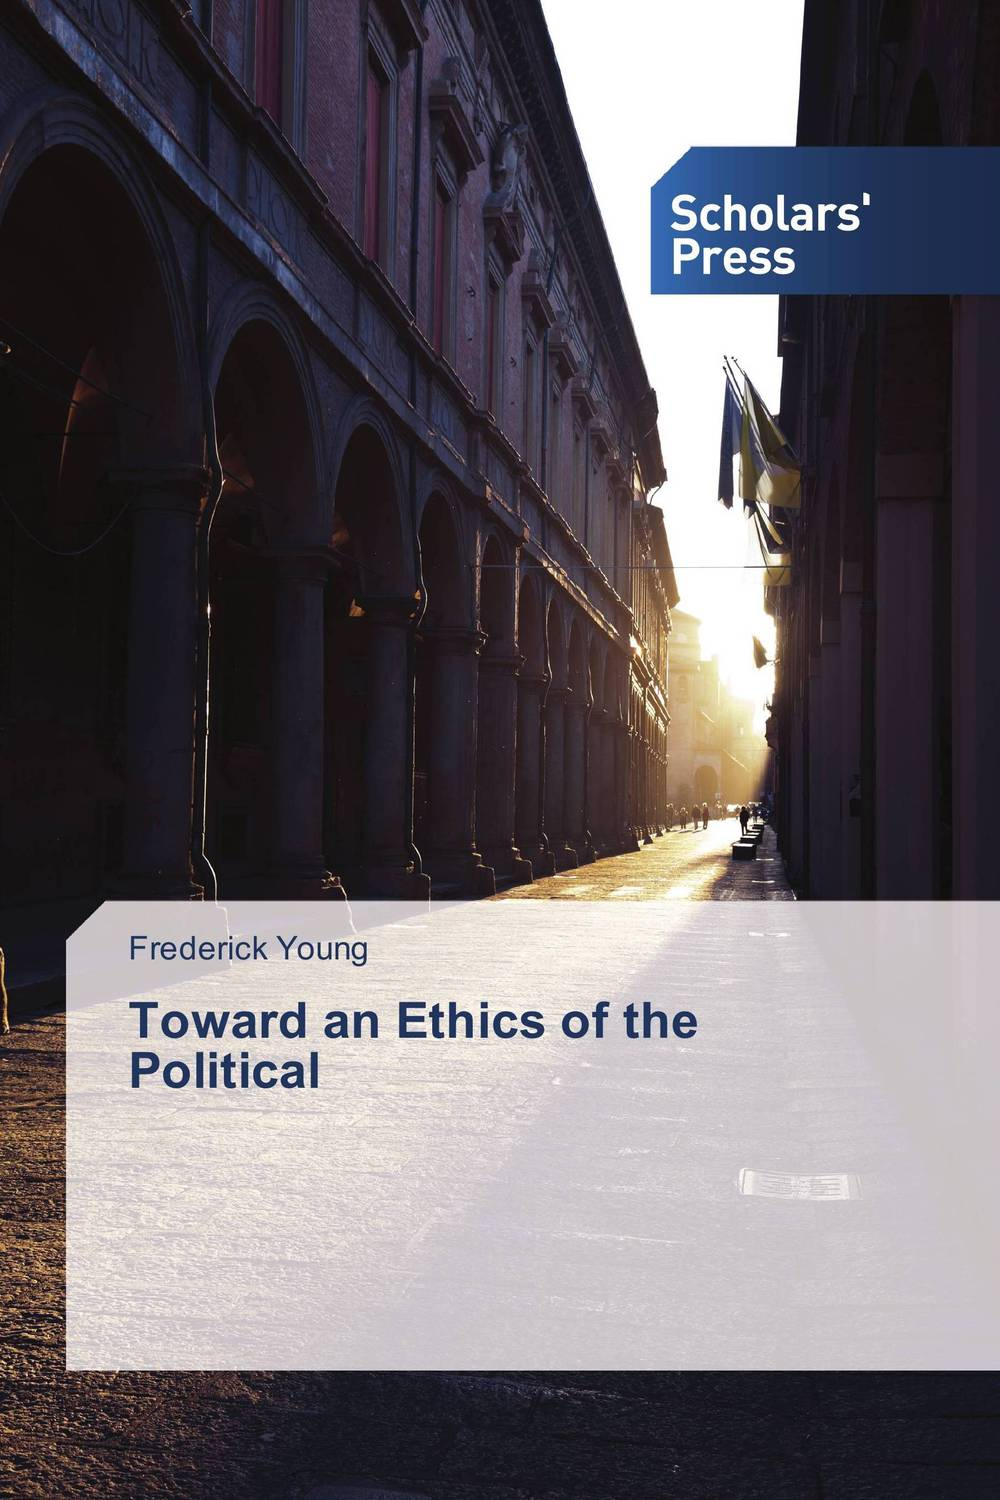 Toward an Ethics of the Political